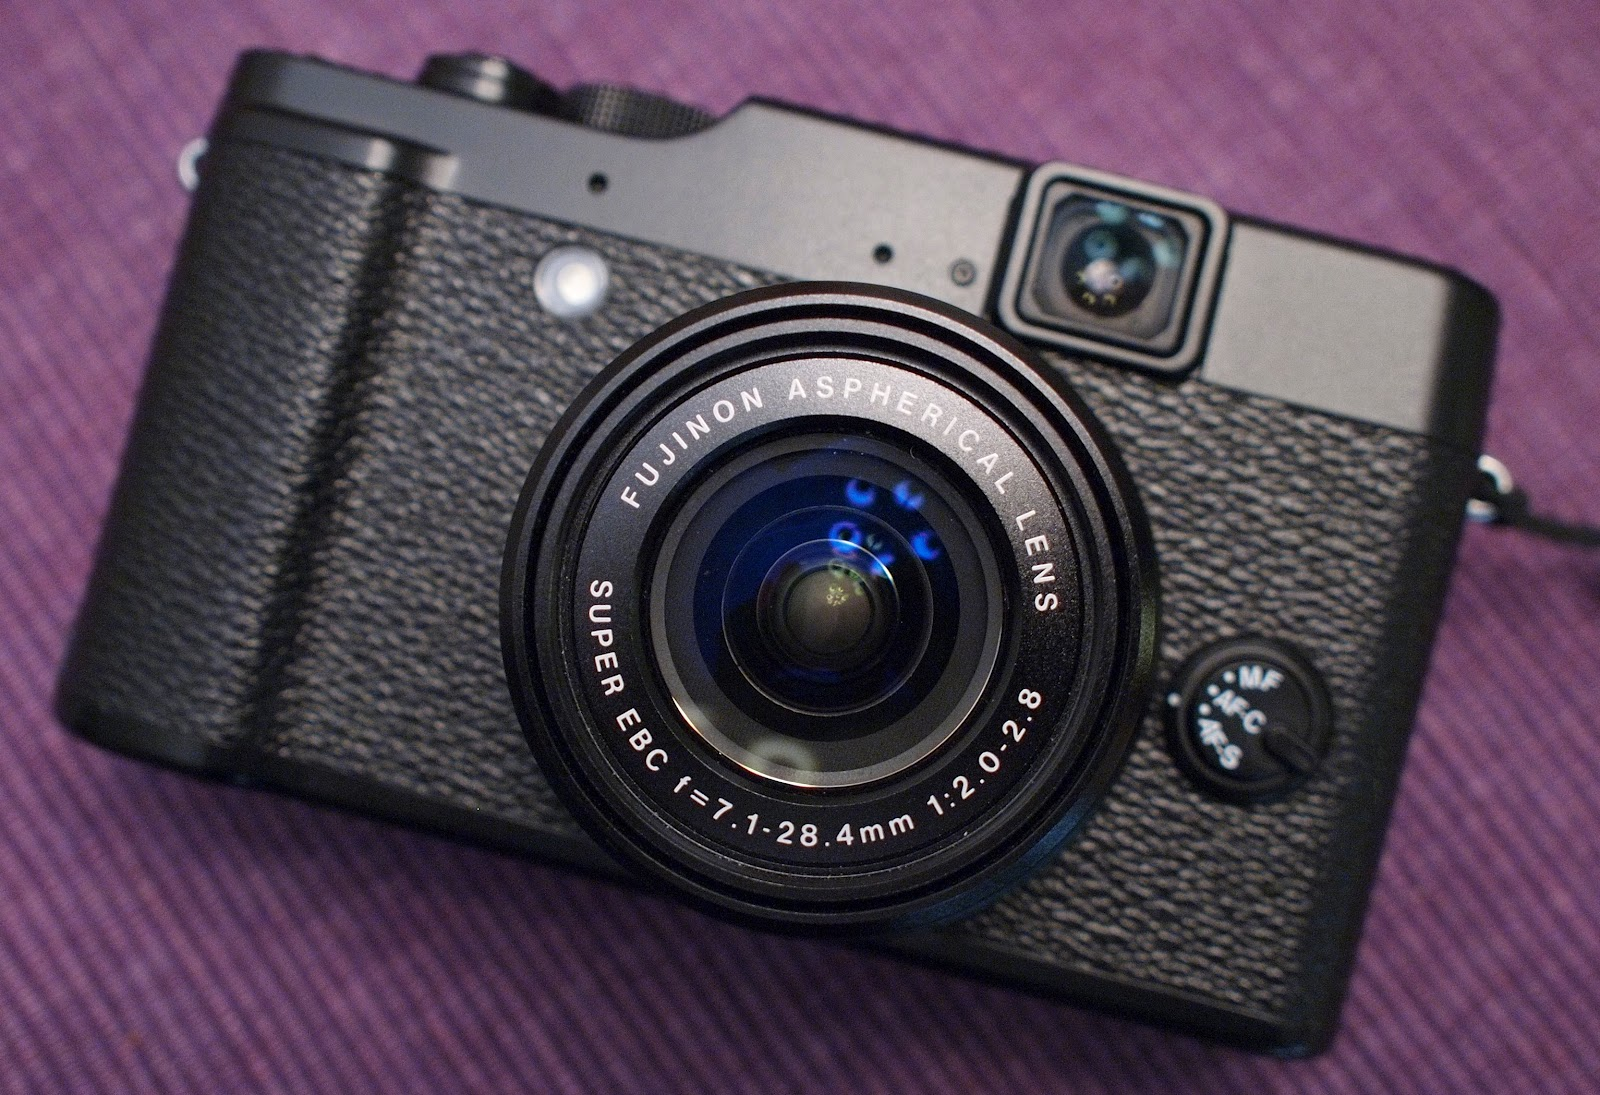 In three weeks time I couldn't quite bond with the X10 like I hoped I  would. On paper and in the flesh the X10 almost seems too good to be true.